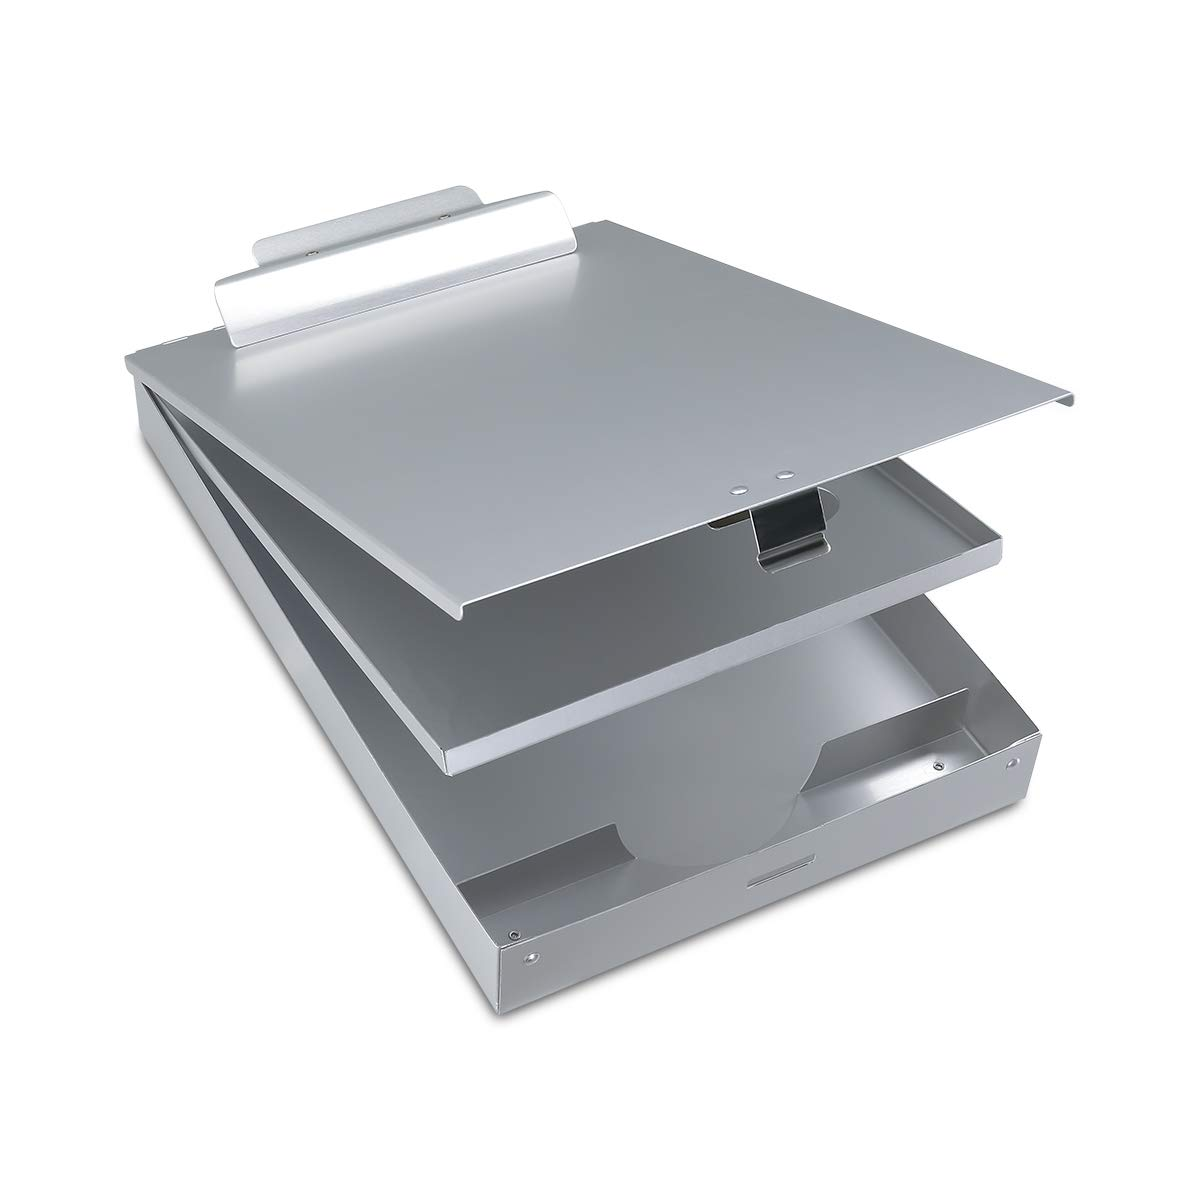 Metal Clipboard with Storage Box, Aluminum Clipboards with Metal Binder Snapak Form holder with Self-Locking Latch and Top Hinged Opening for Heavy Duty, Nursing, Patrol, Office Business Professionals